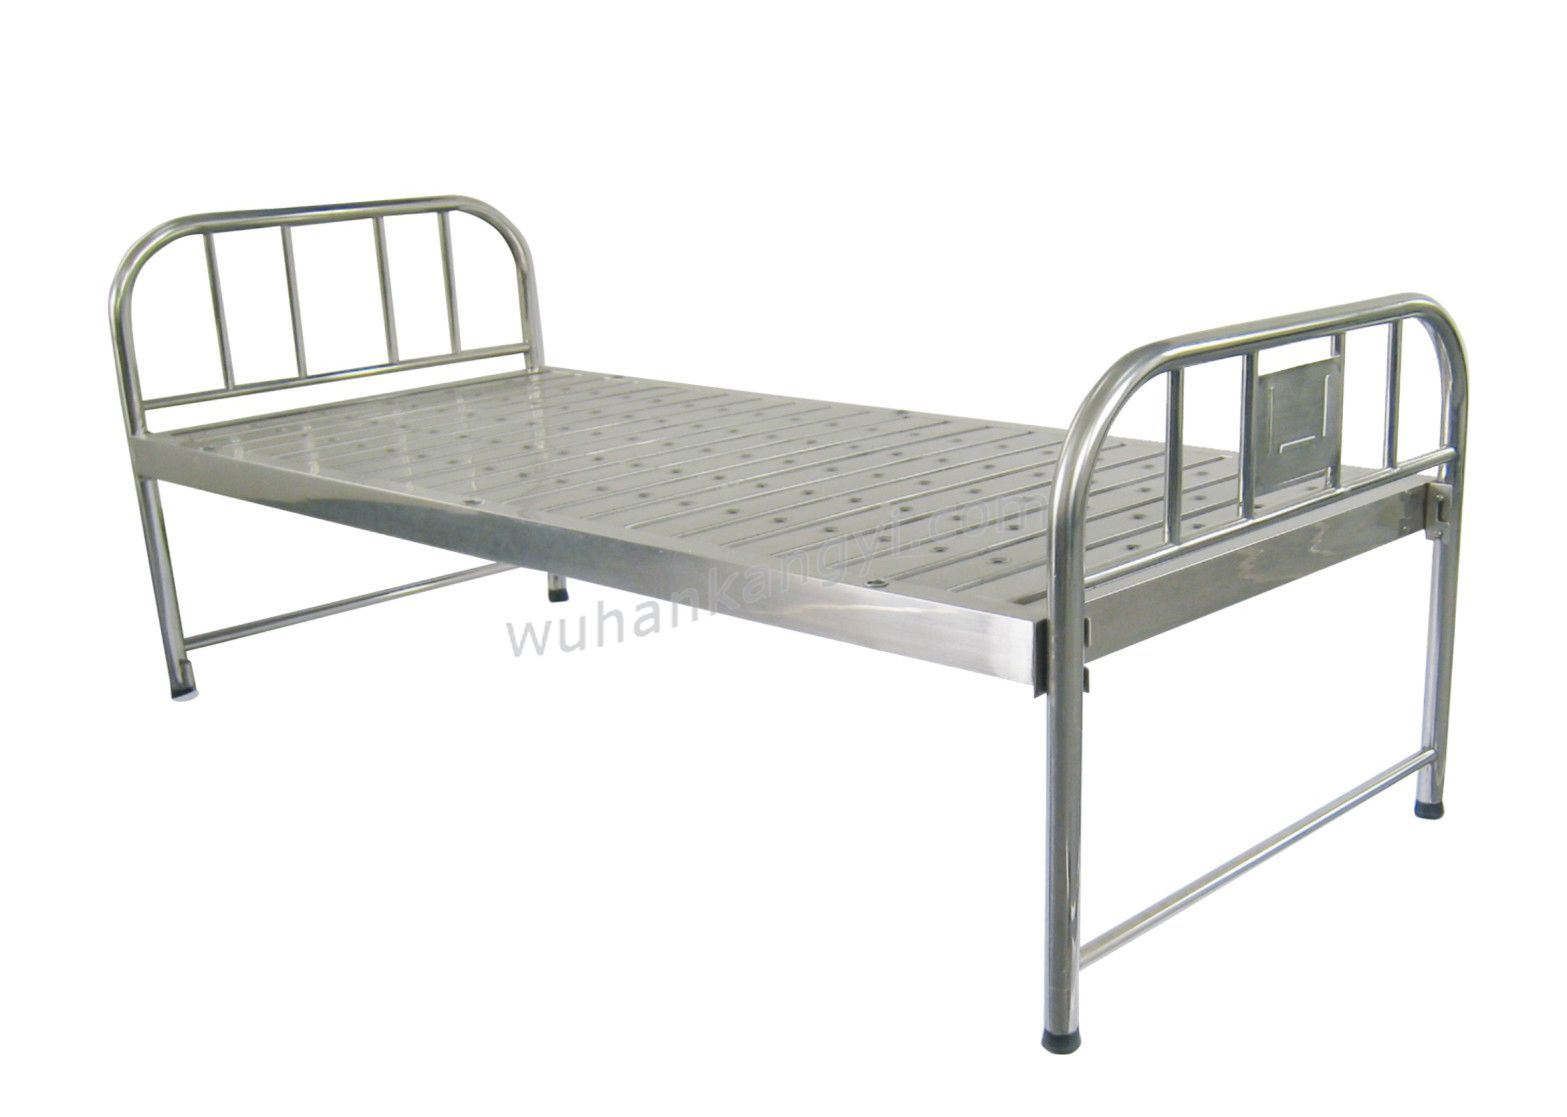 Electric Hospital Bed From $580 - Free Shipping